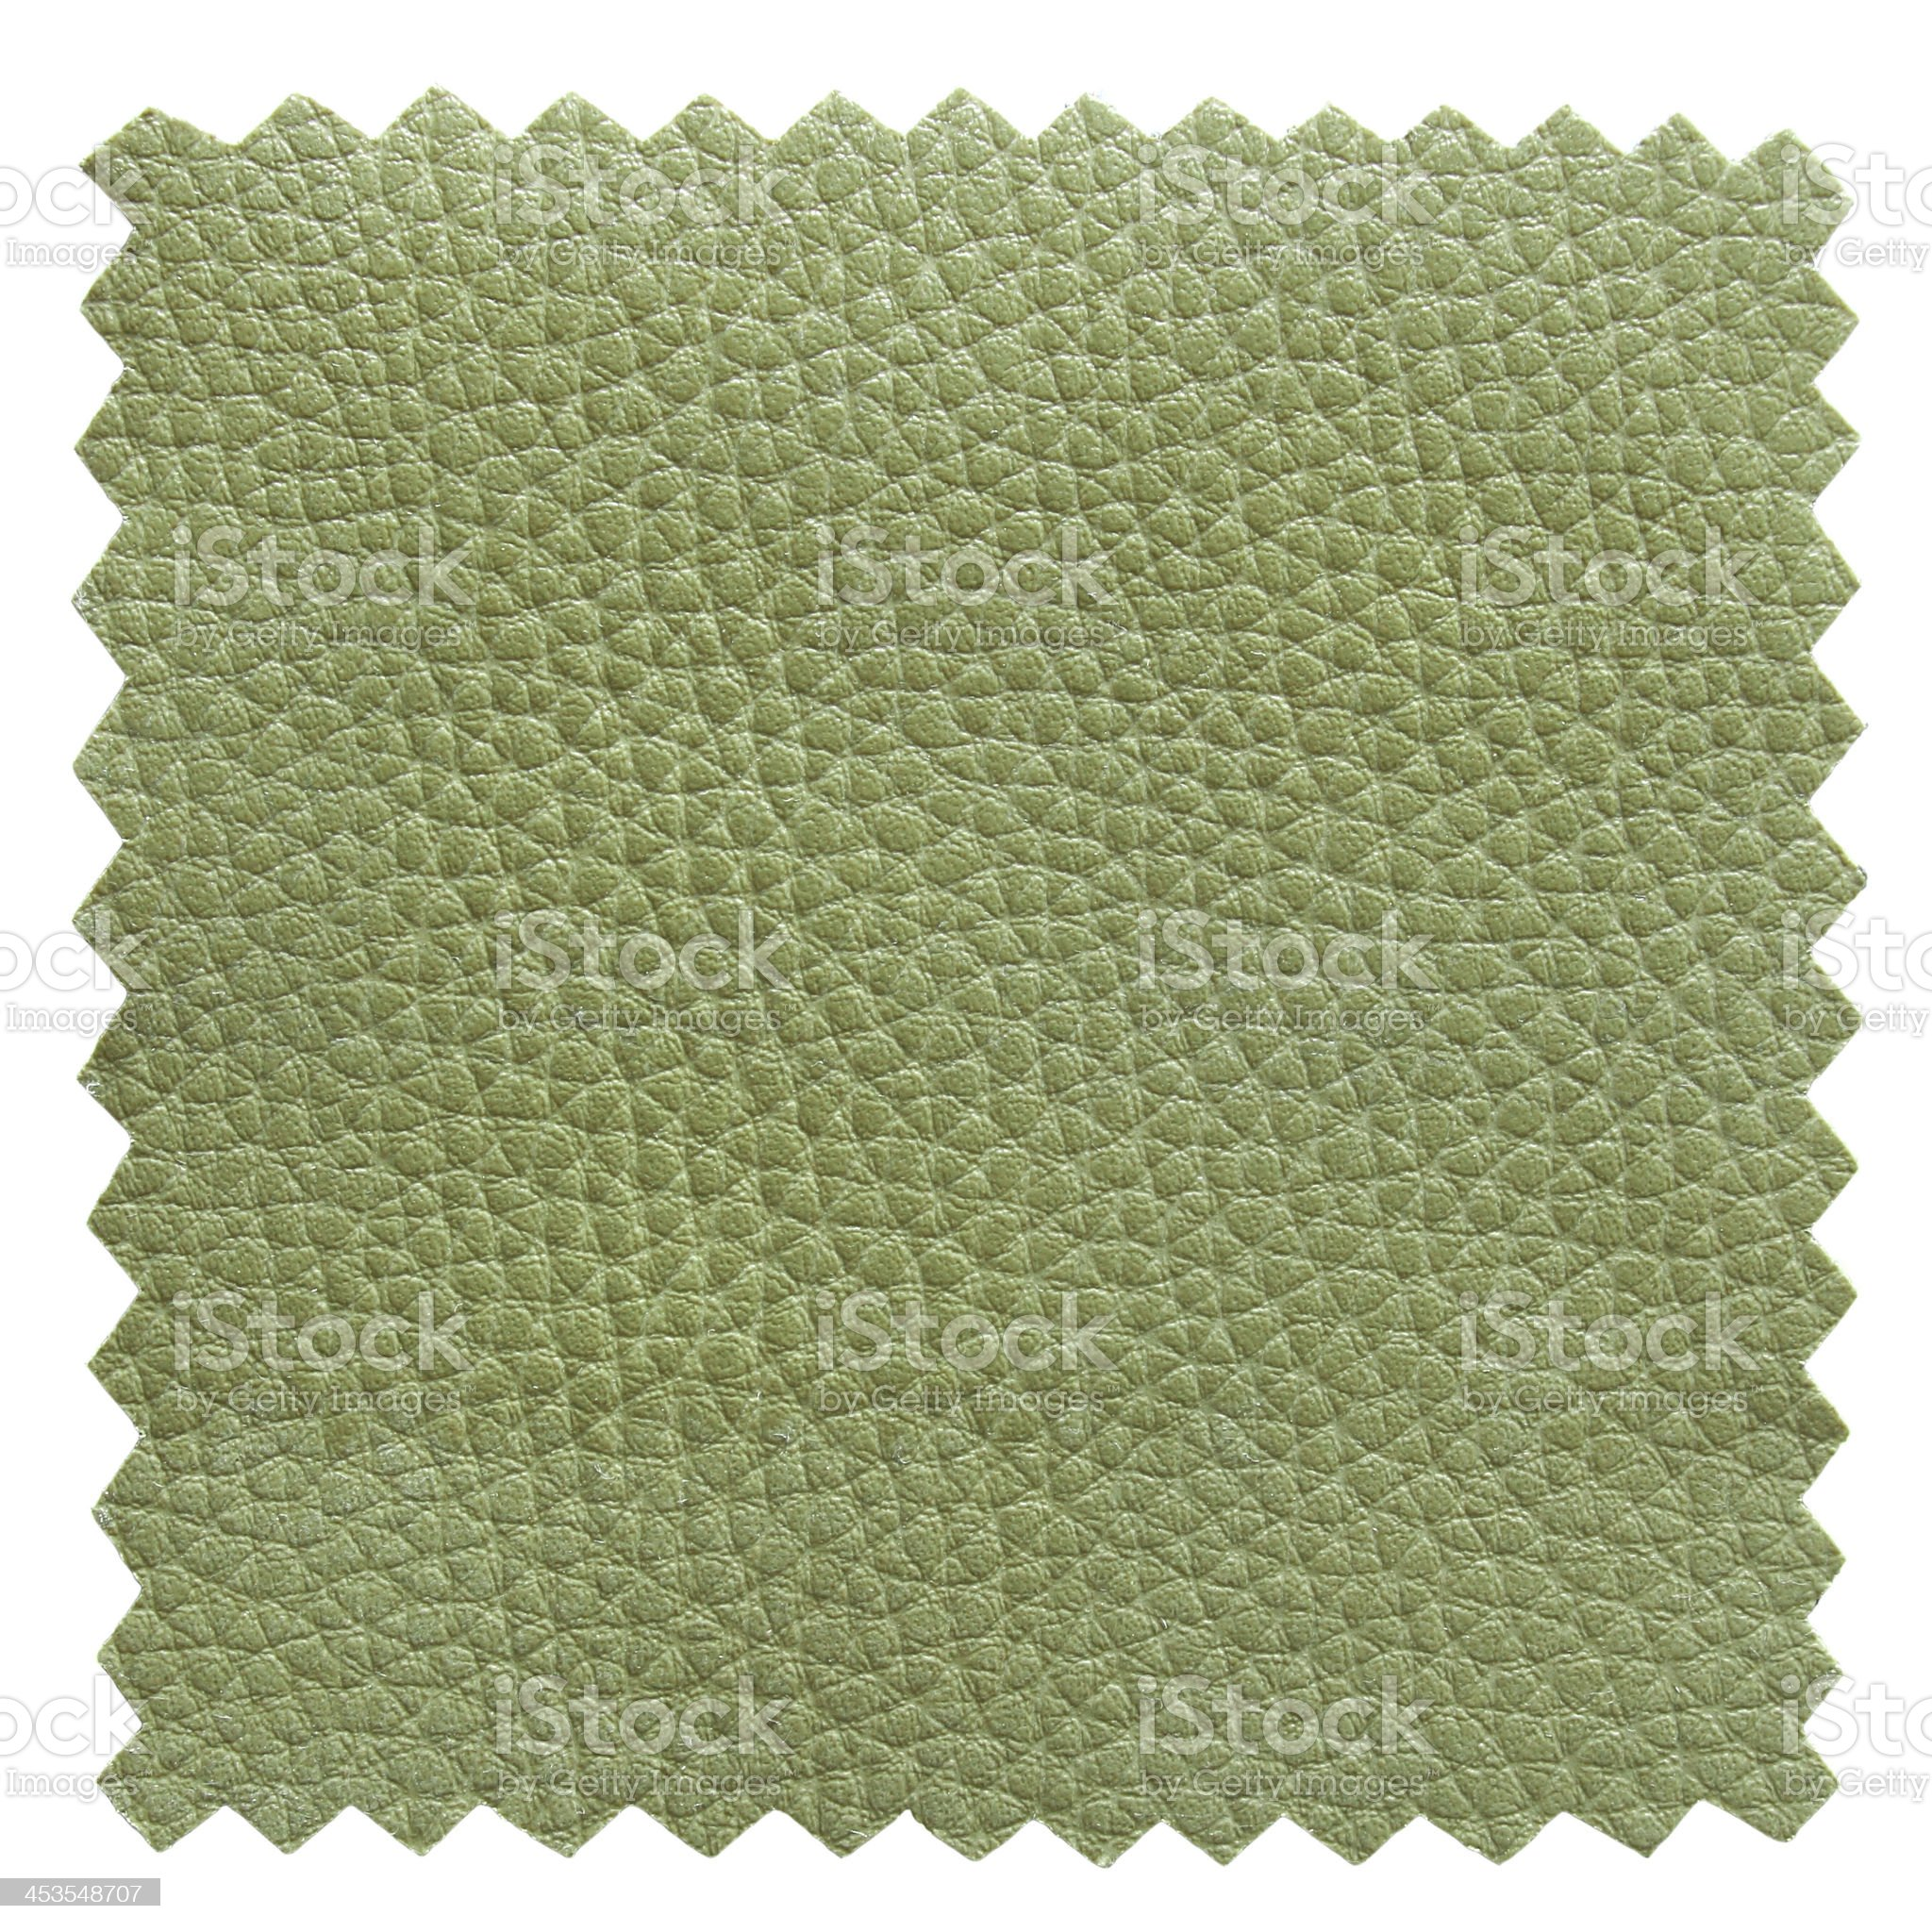 green leather samples texture royalty-free stock photo